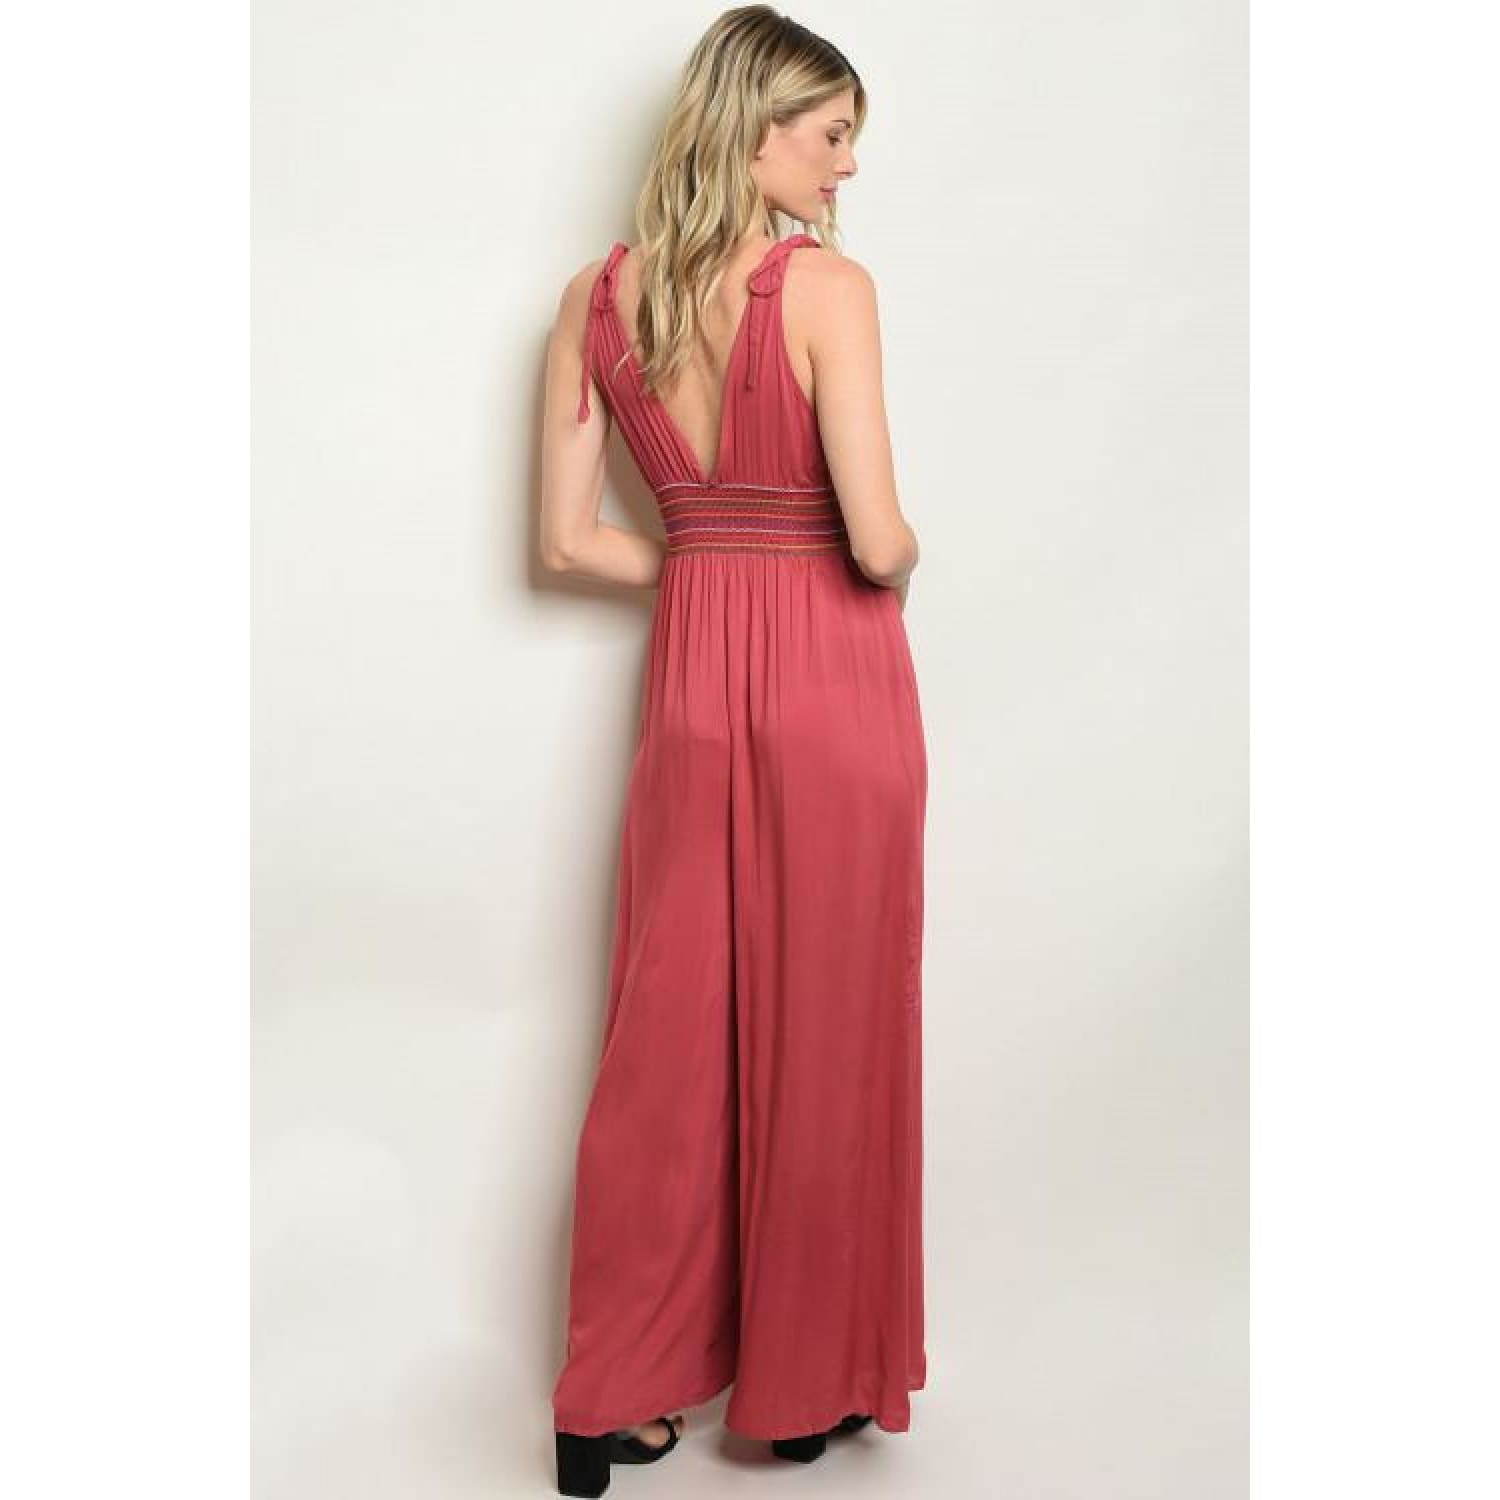 Rose Wide Leg Waist Design Jumpsuit - Best YOU by HTS